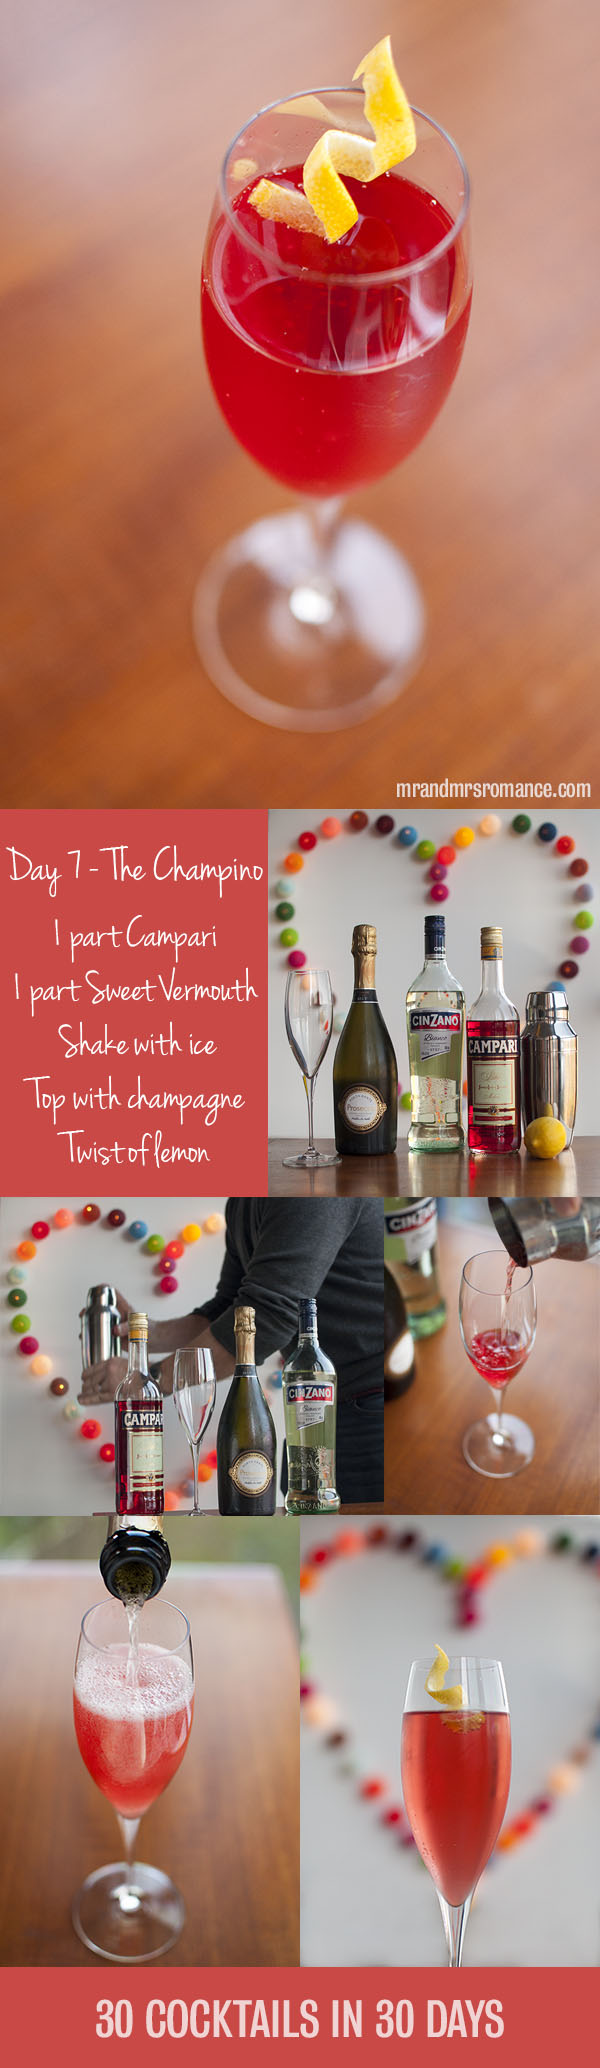 Mr and Mrs Romance - Day 7 - Champino champagne cocktail recipe